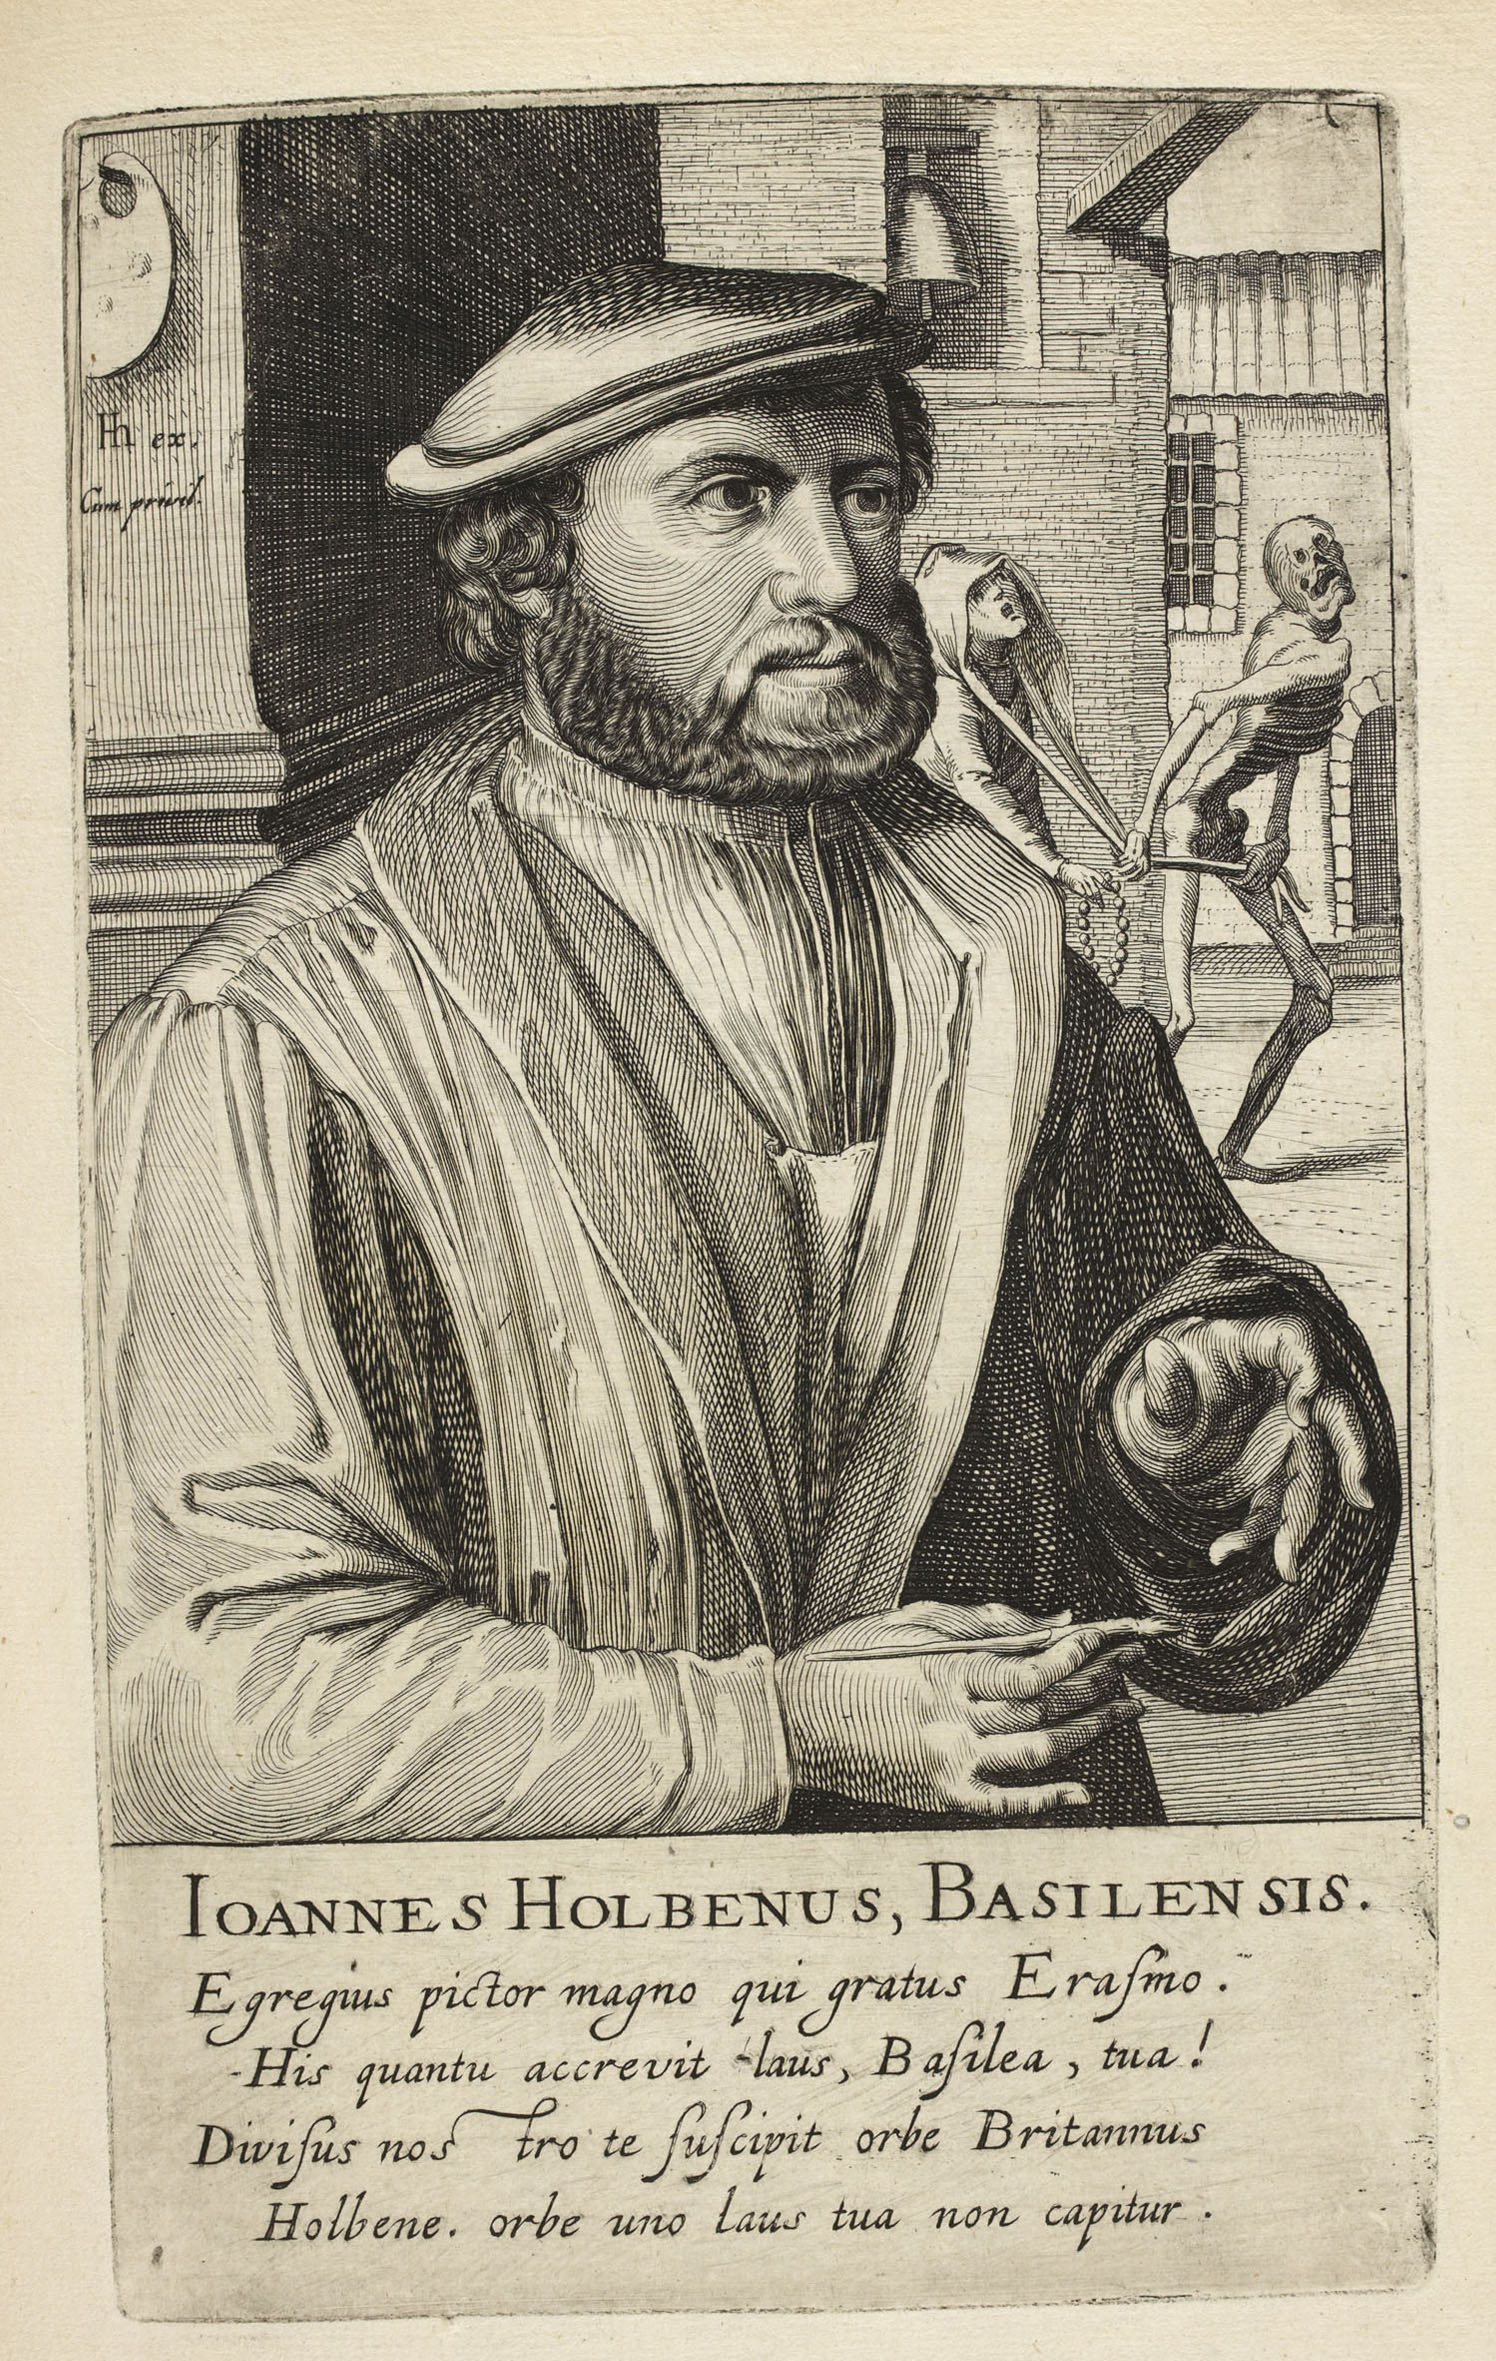 Holbein by Hondius